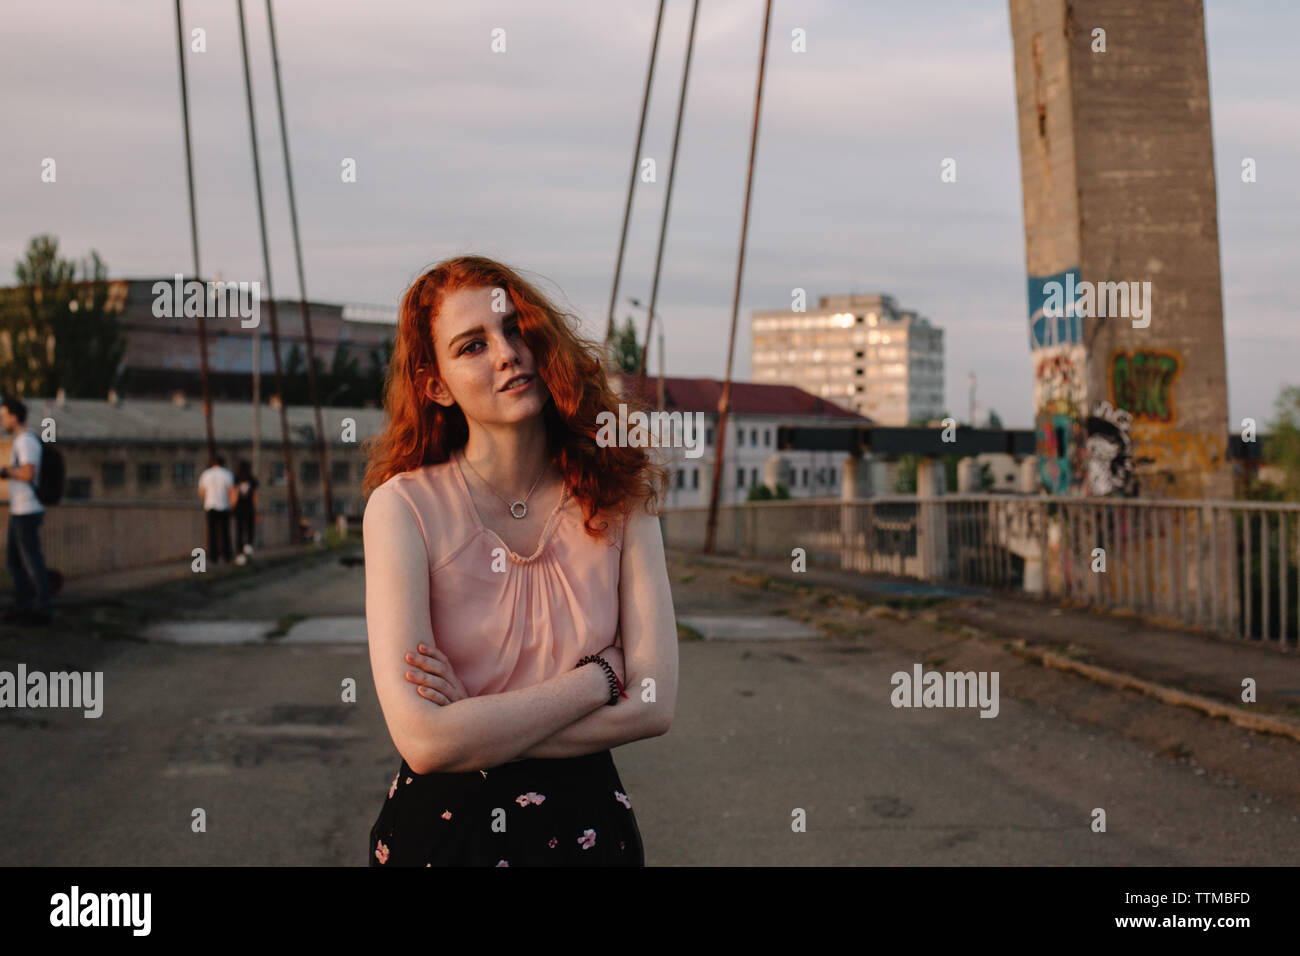 Portrait of young woman with red hair standing on bridge in city Stock Photo